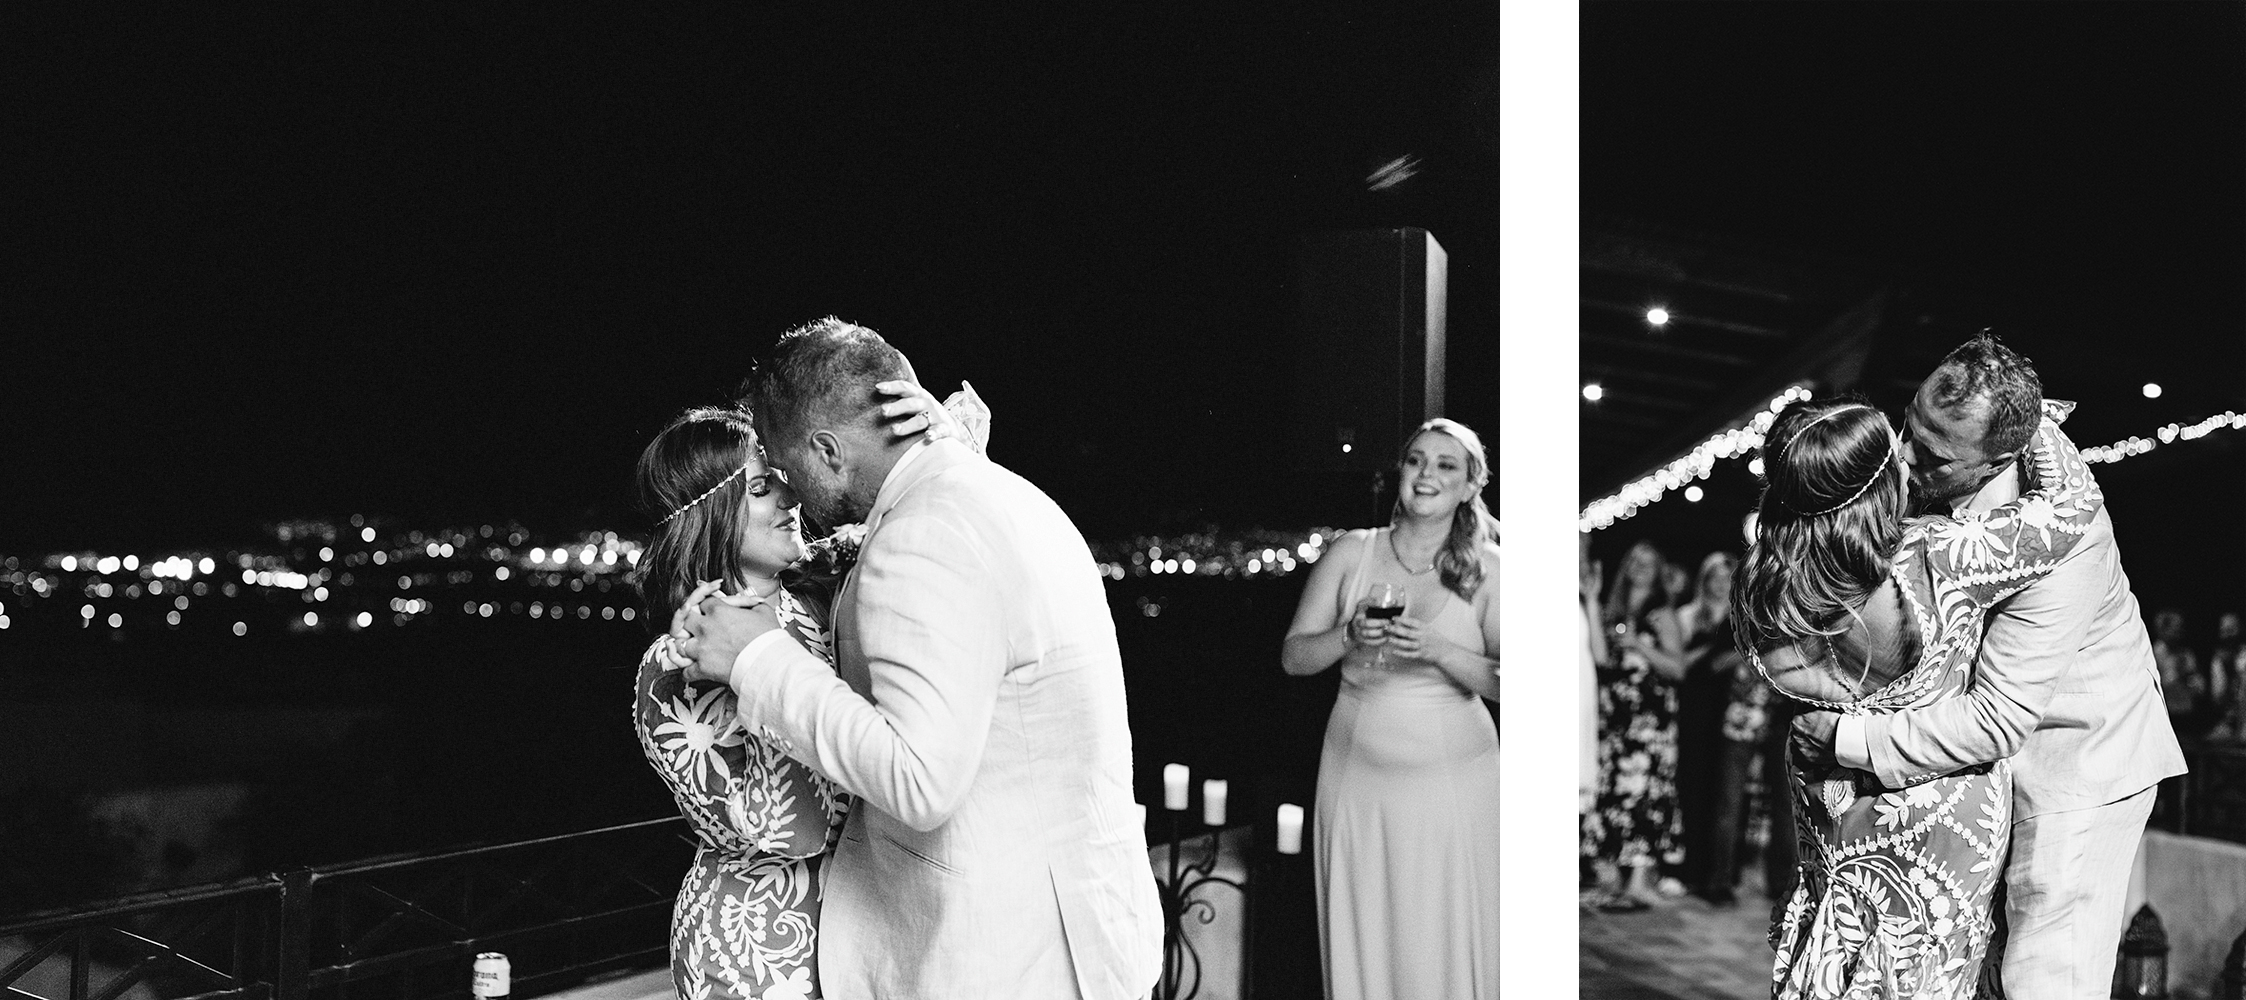 spread-14-cabo-san-lucas-junebug-weddings-green-wedding-shoes-toronto-wedding-photographer-3b-photography-ventanas-private-club-mexico-reception-night-bride-and-groom-first-dance-real-moments-kiss-bw.png